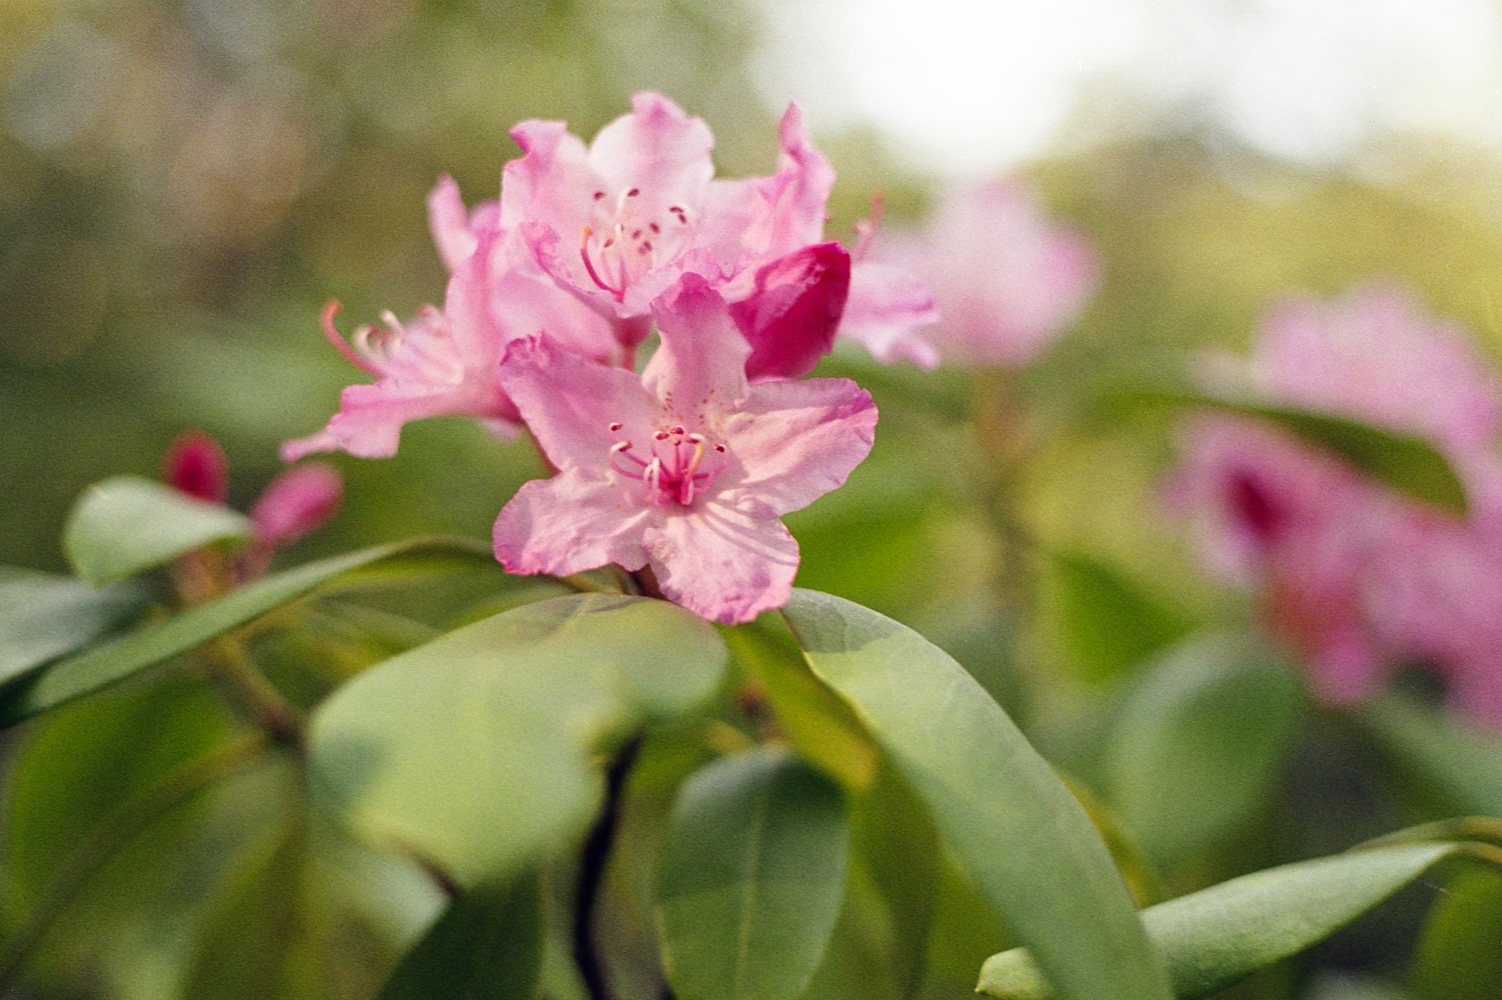 01-31 Rhododendron near Riley Horse campground.jpg